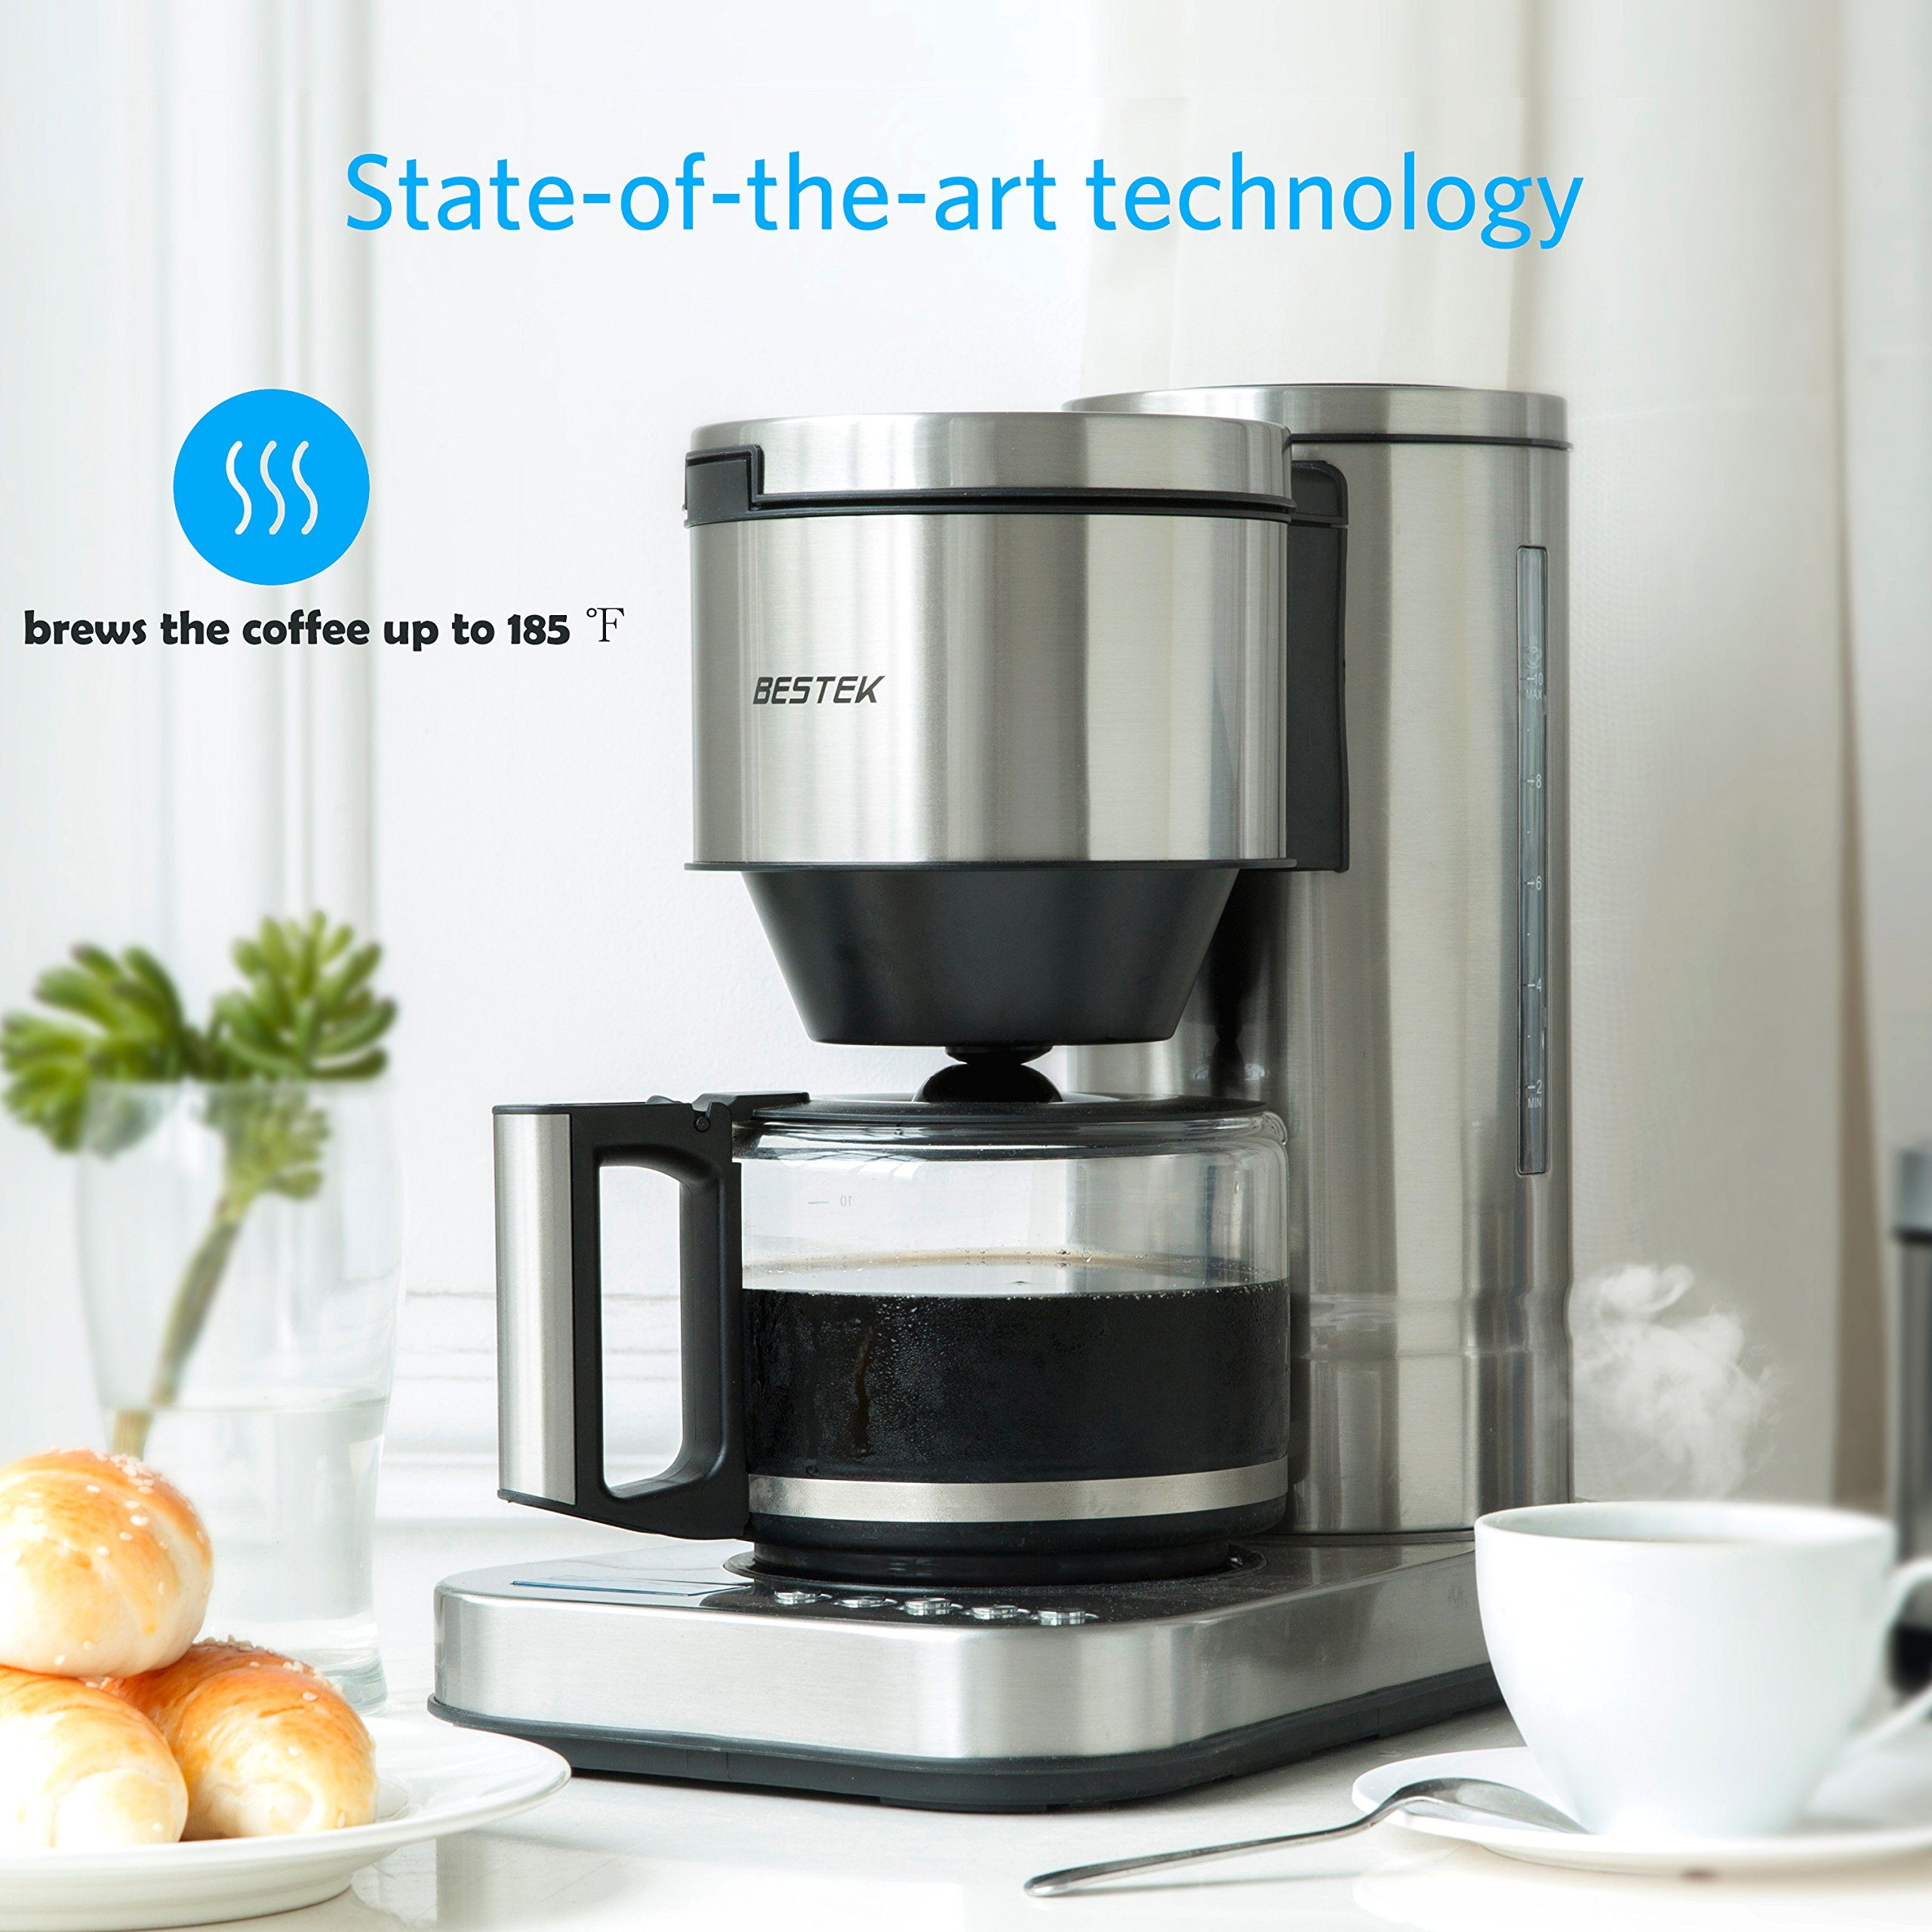 Bestek cup drip coffee maker in stainless steel programmable and